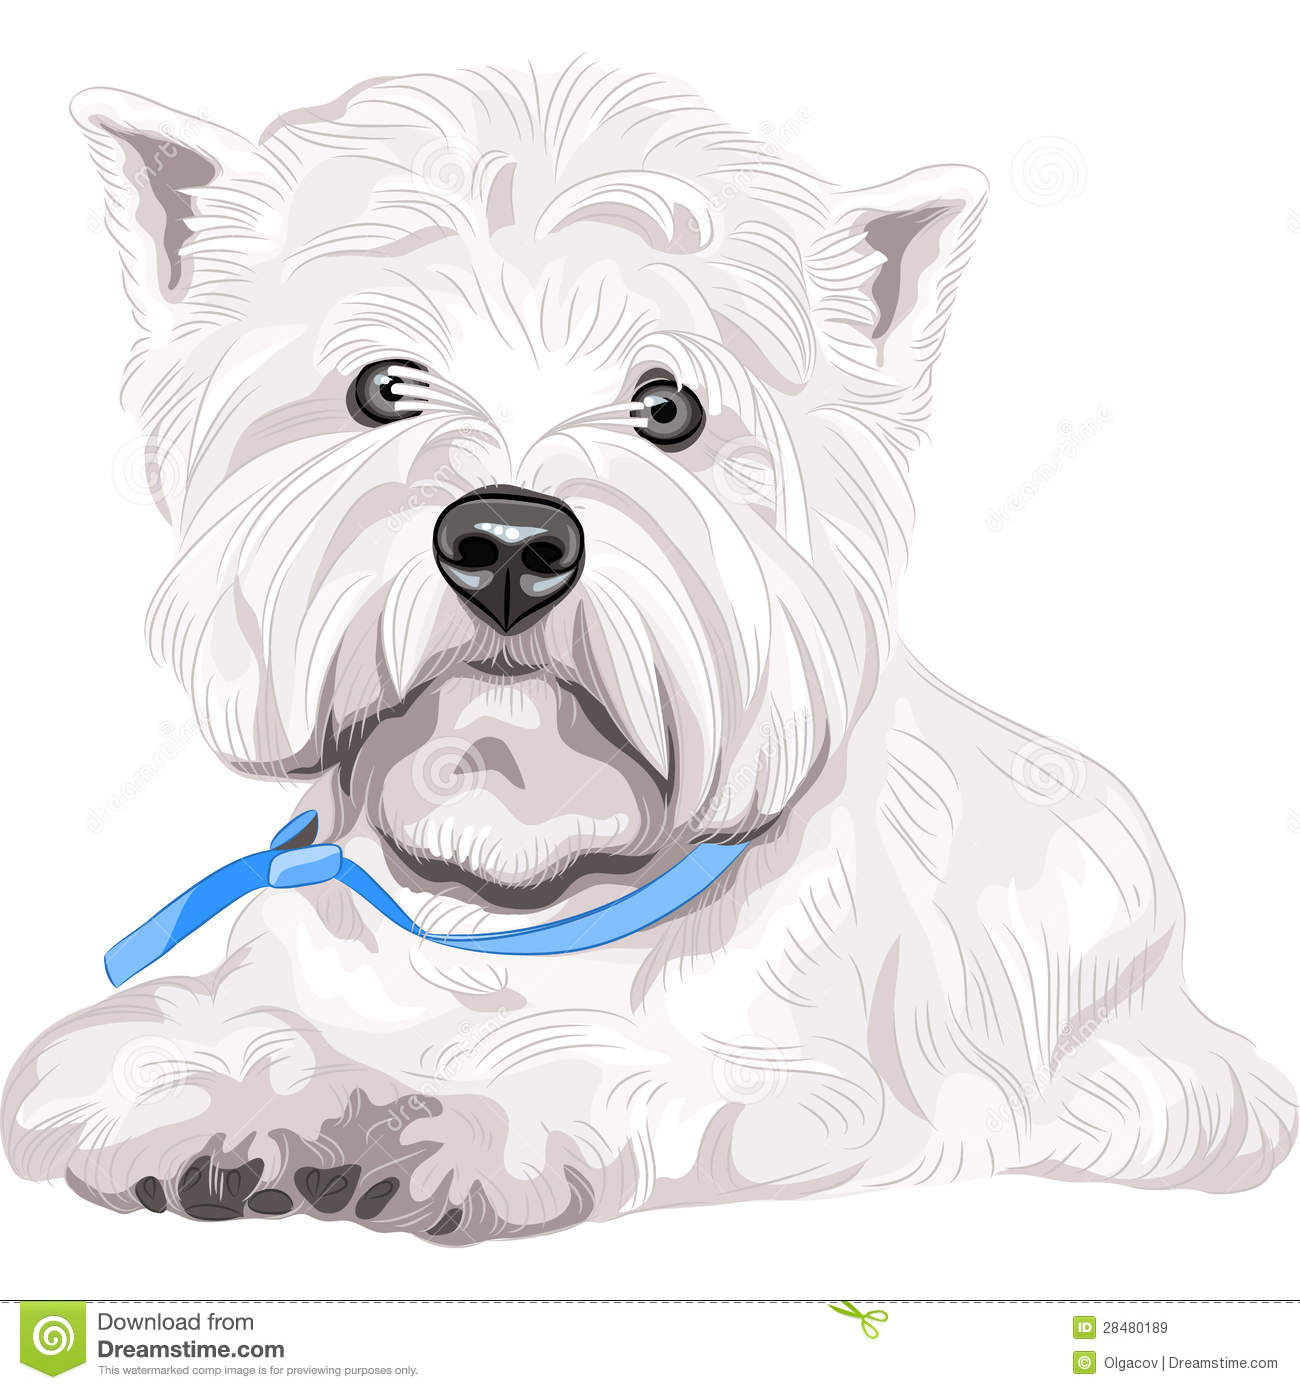 West Highland White Terrier clipart #14, Download drawings